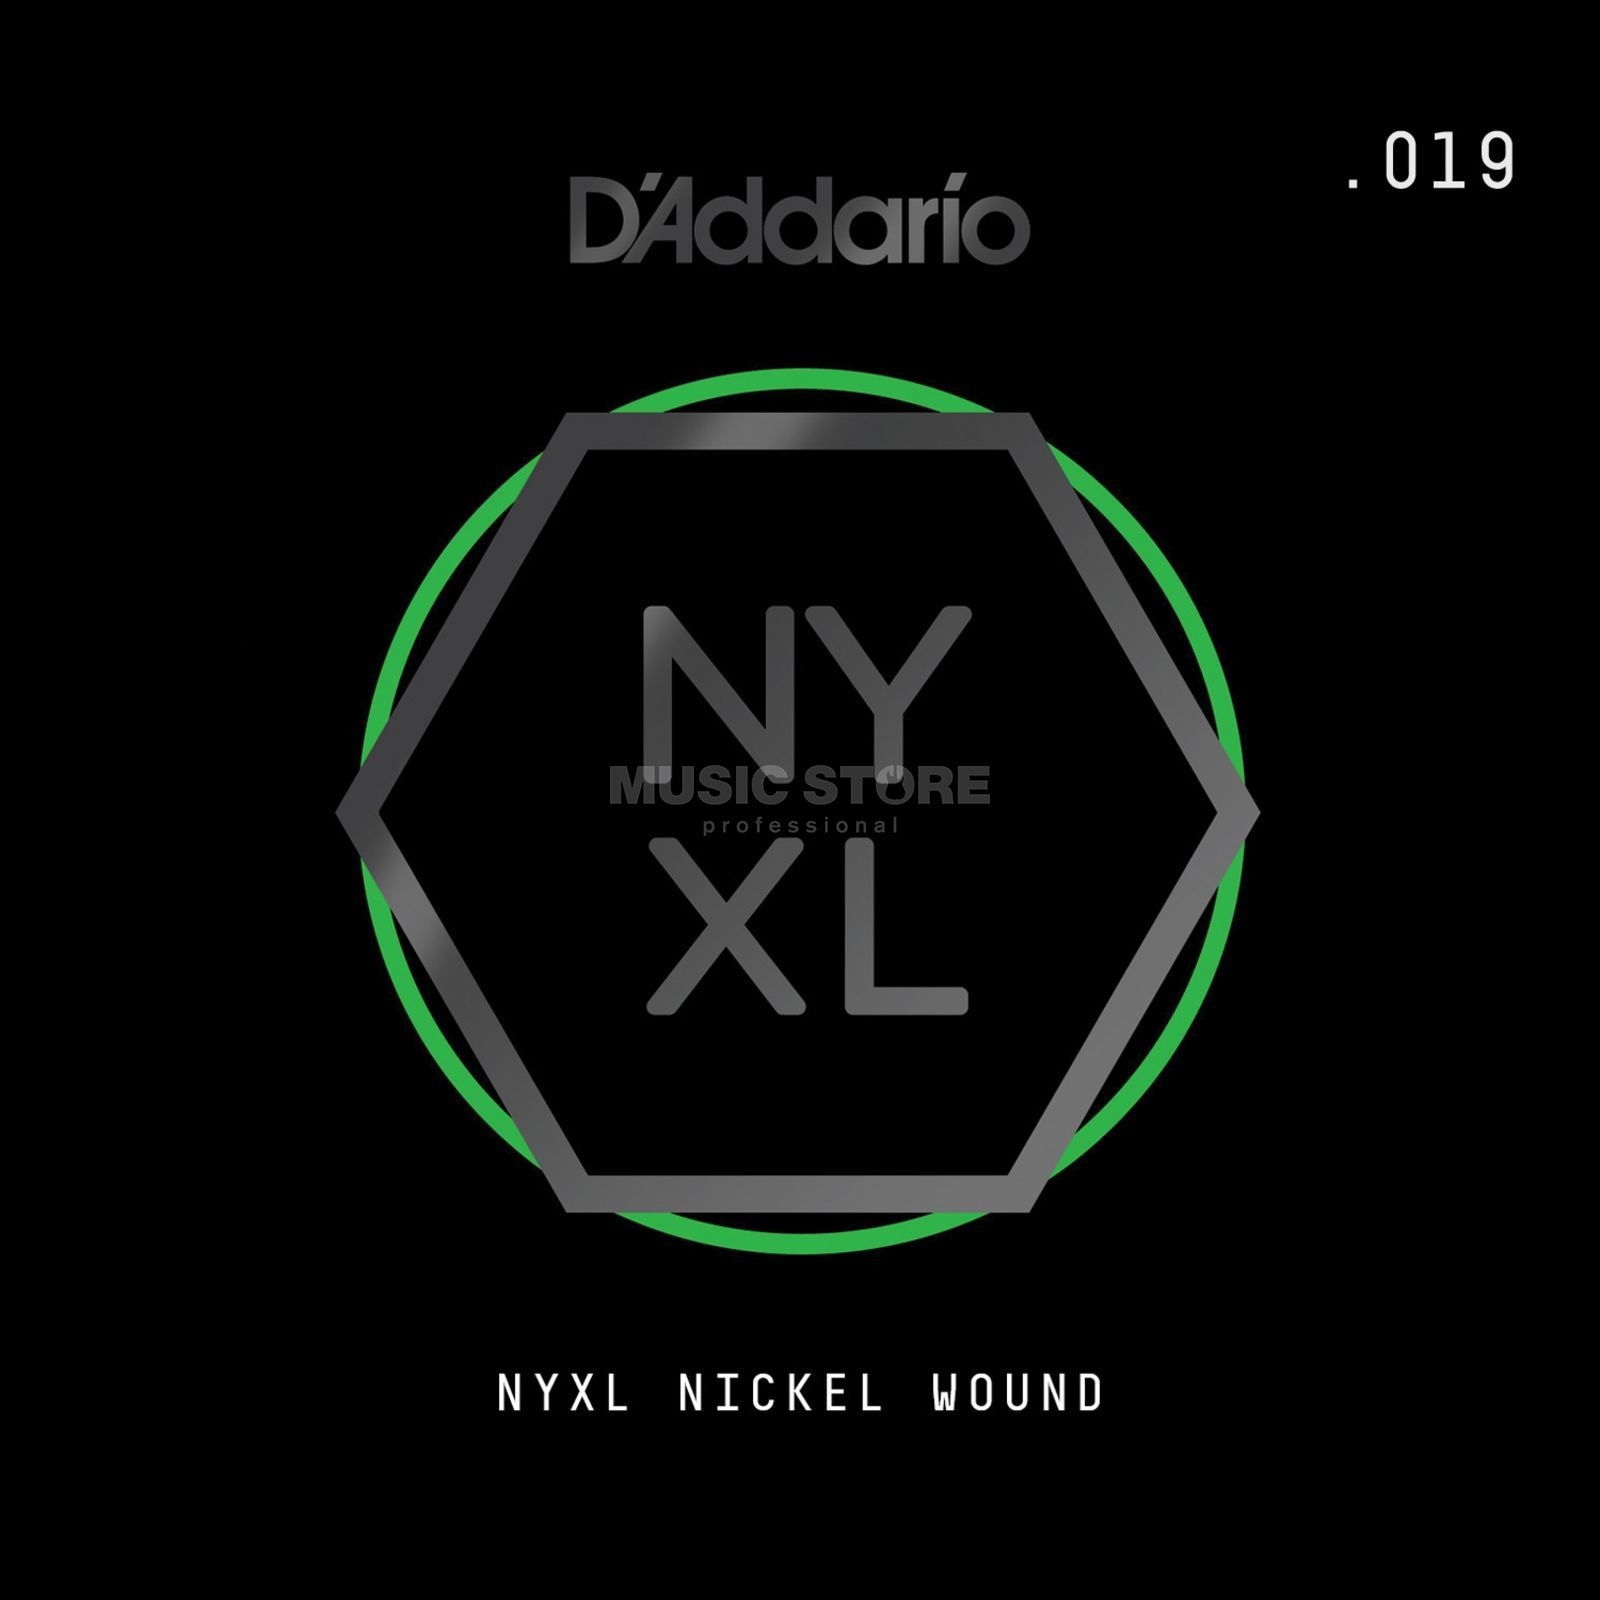 D'Addario NYNW019 Single String Nickel Wound Product Image